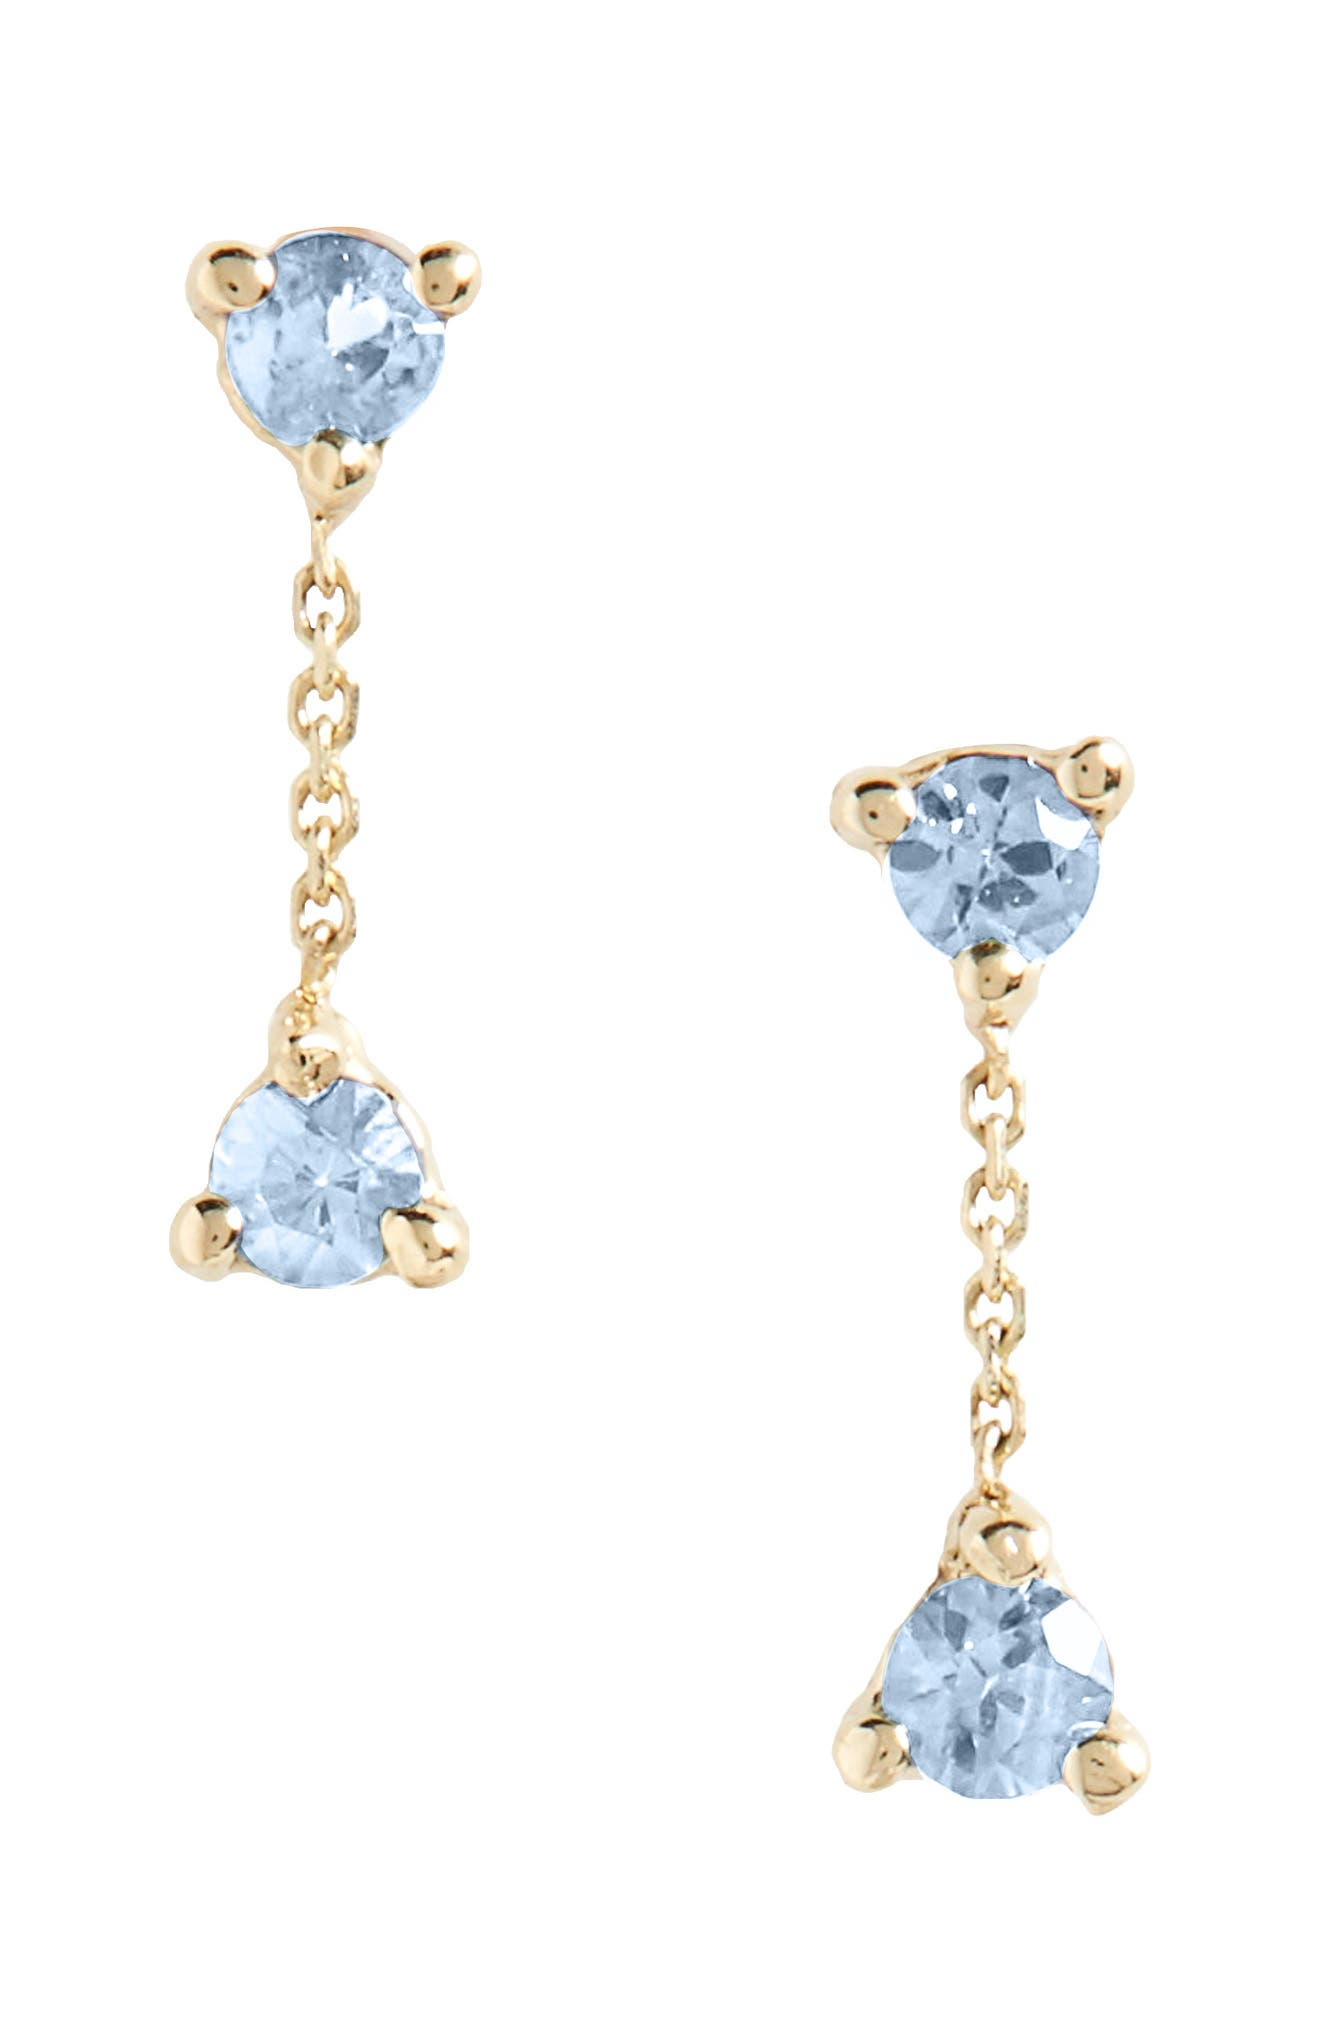 Counting Collection Small Two-Step Sapphire Drop Earrings,                             Main thumbnail 1, color,                             Sapphire/ Gold